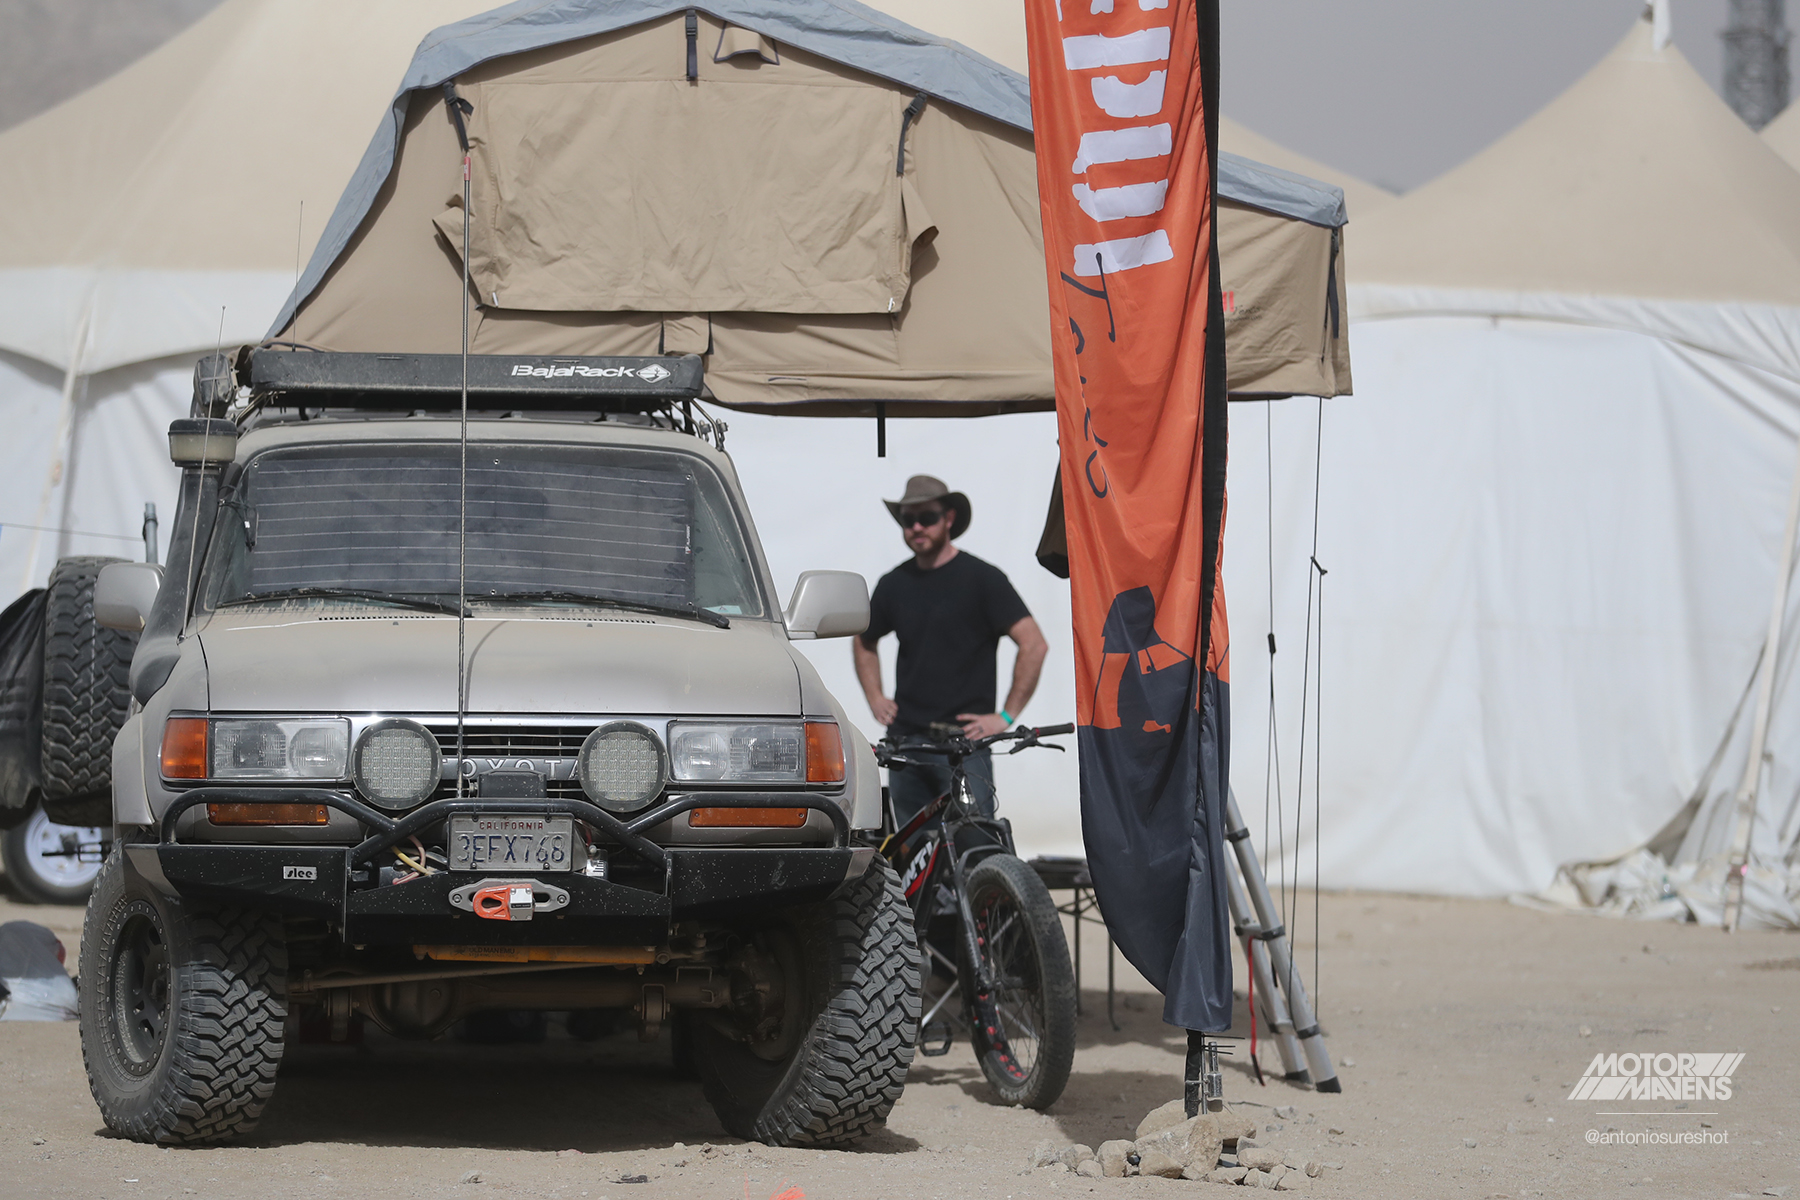 King of the Hammers, Toyota Land Cruiser, Hammertown, KOH, FJ80, FZJ80, overland expedition